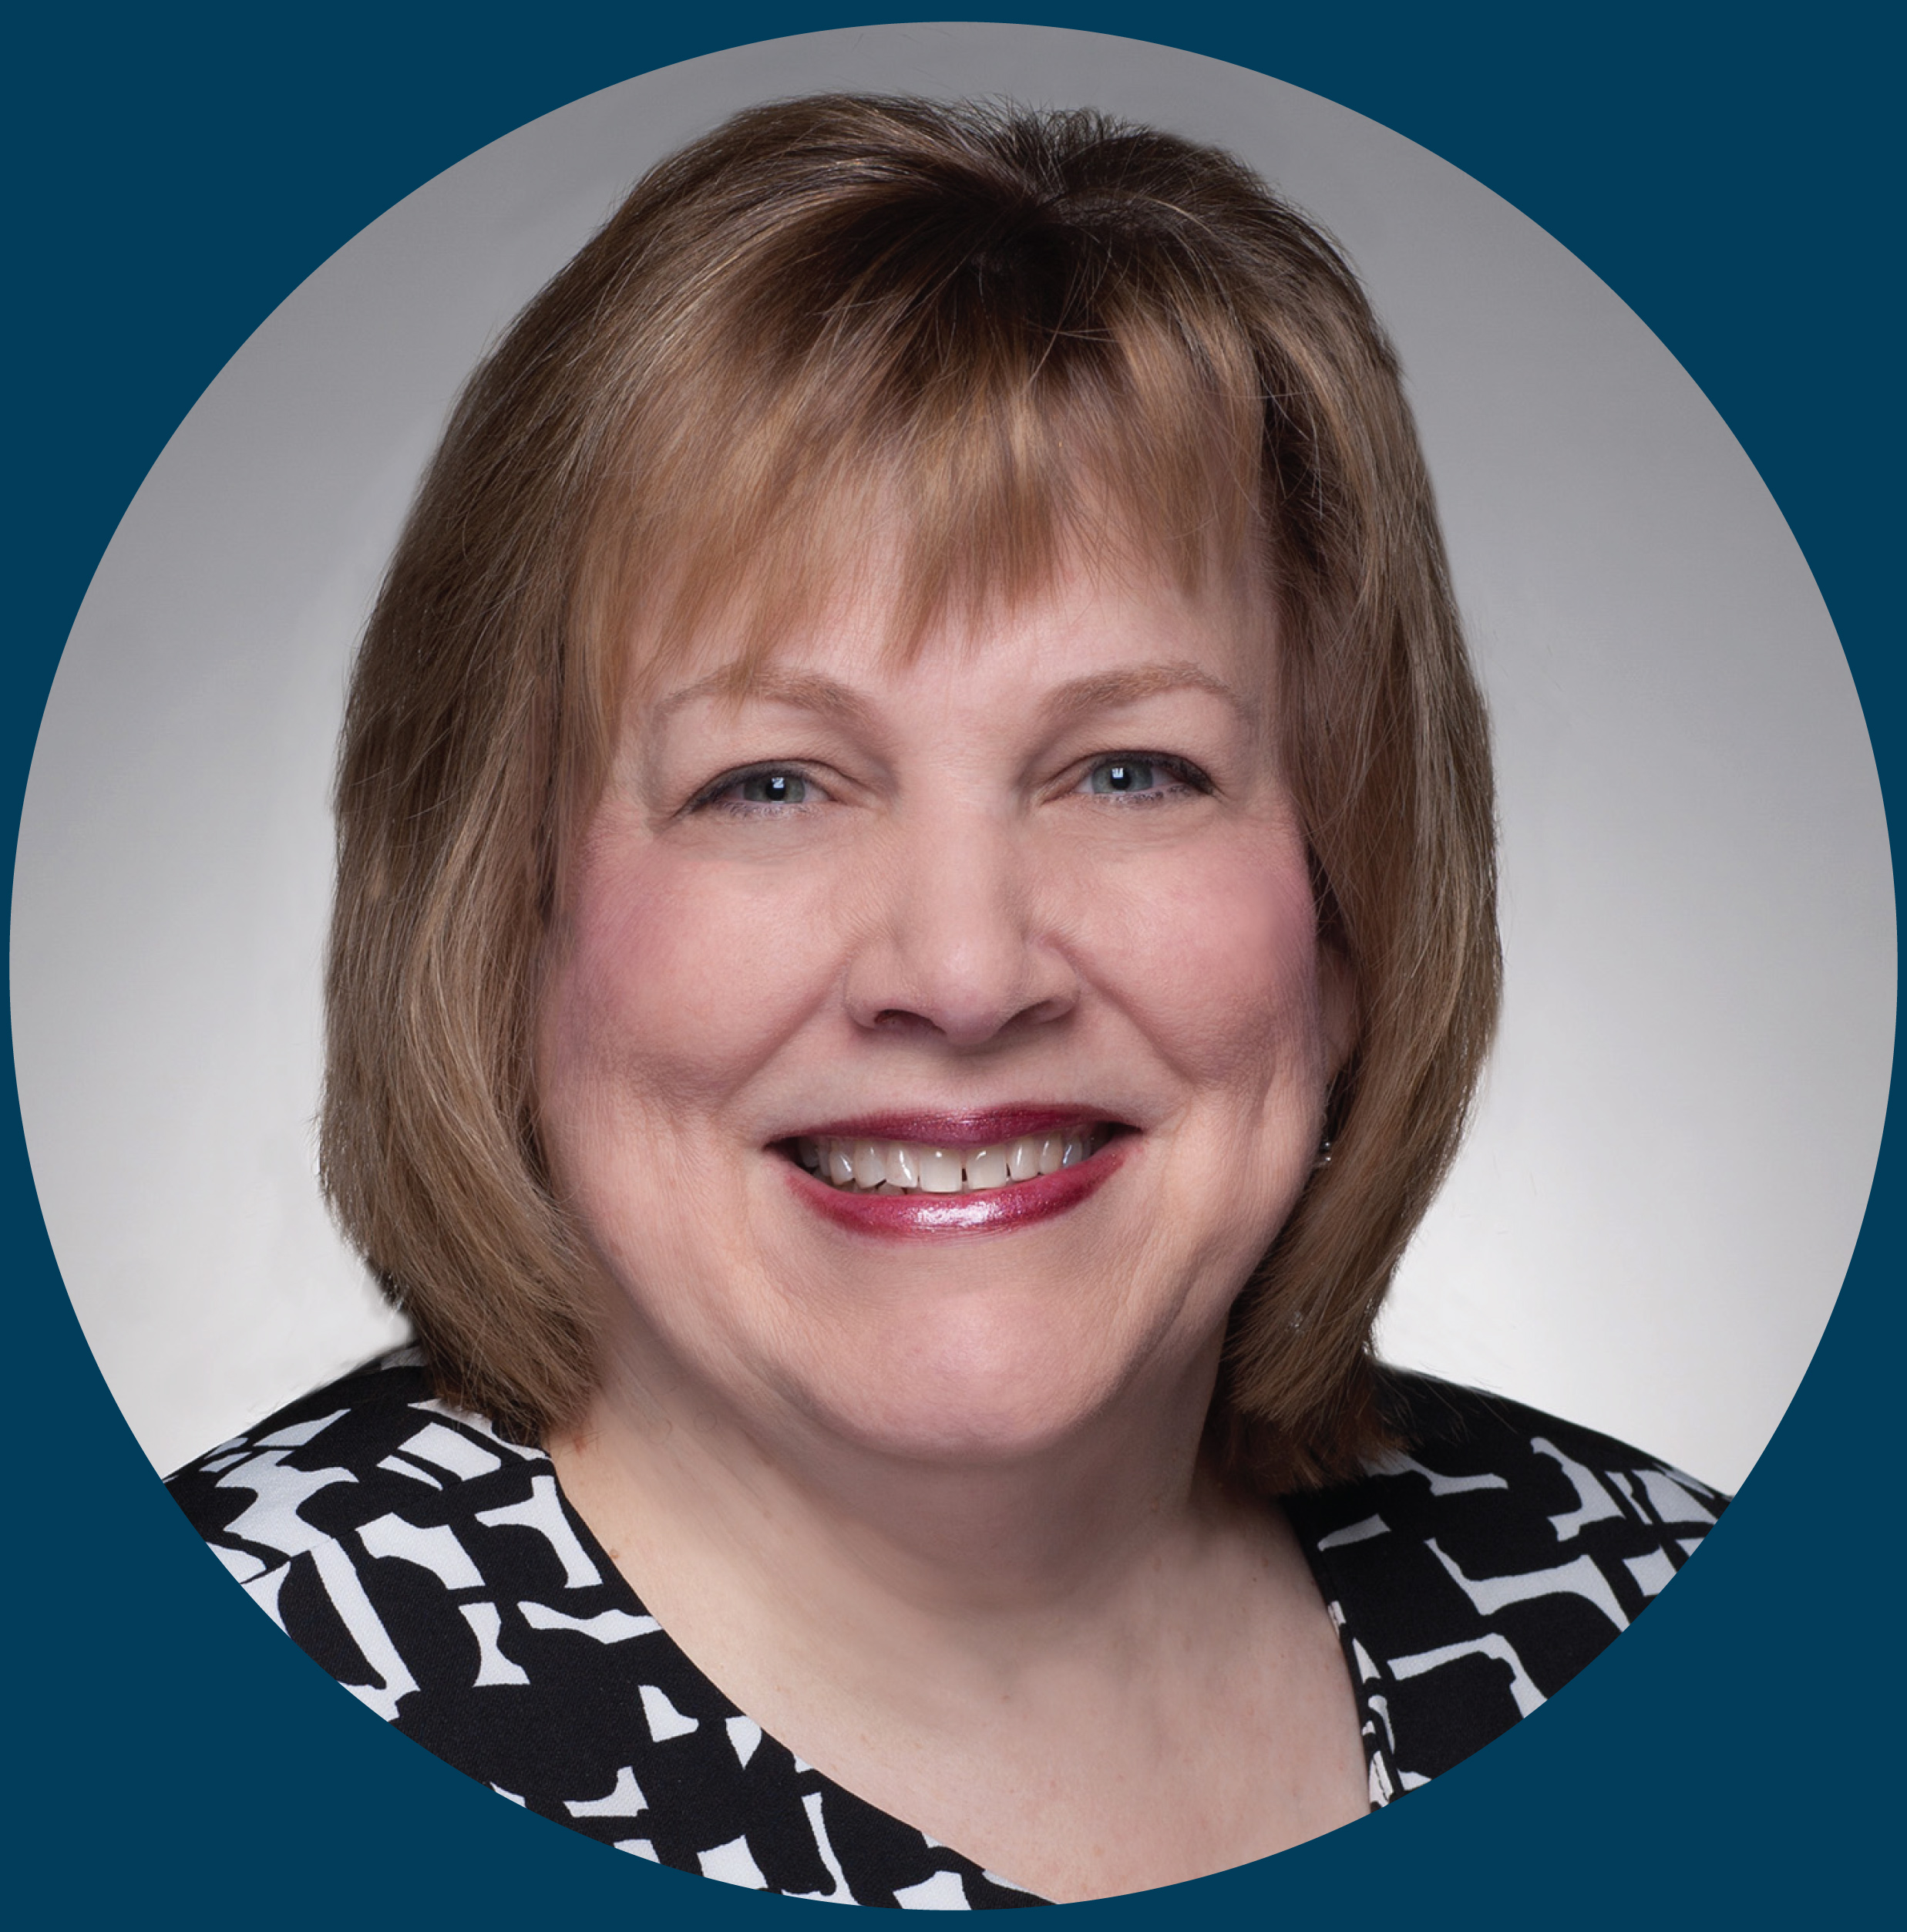 Karen E. Johnson, Senior Vice President, Clinical Services and Division Compliance Officer, Behavioral Health, Universal Health Services